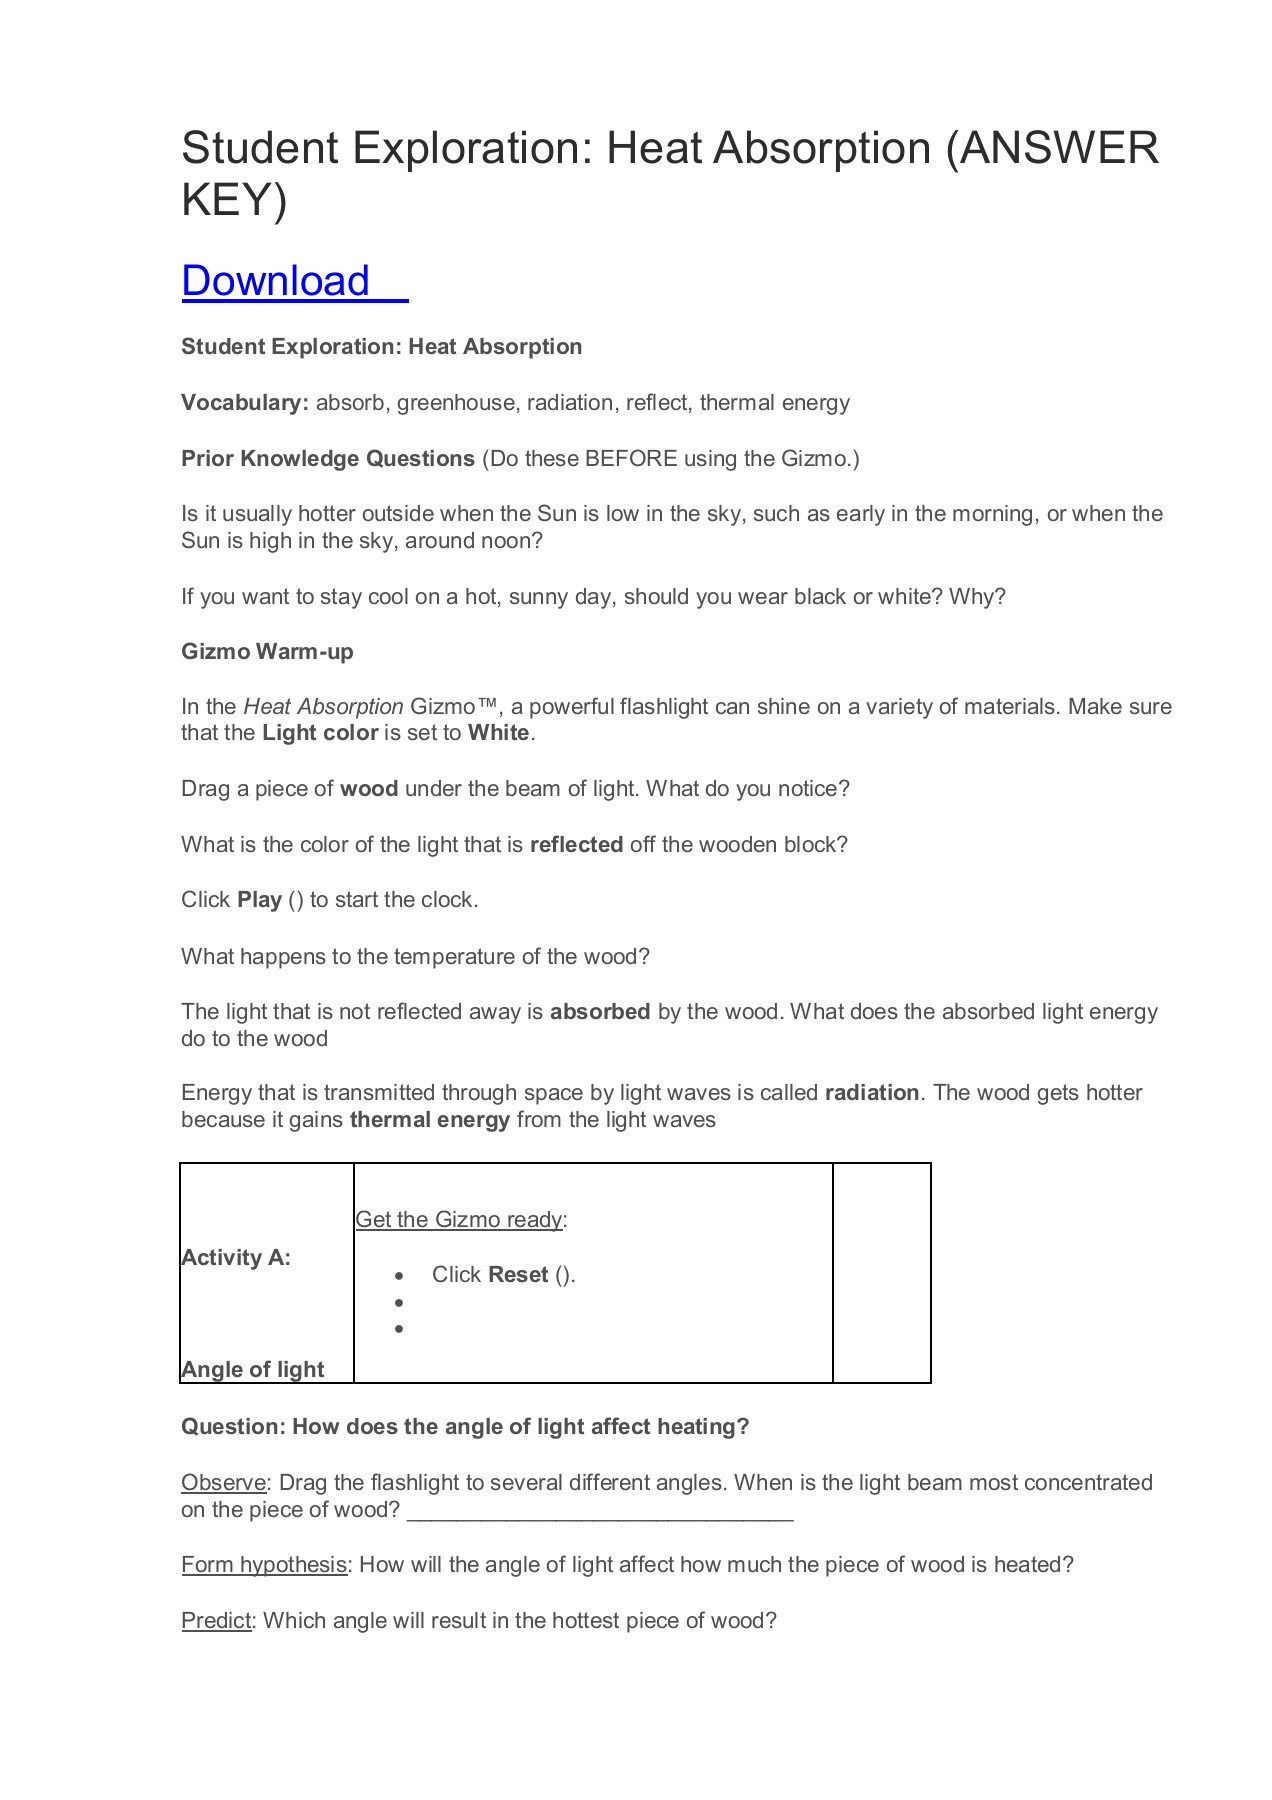 Student Exploration Waves Gizmo Worksheet Answer Key Pdf